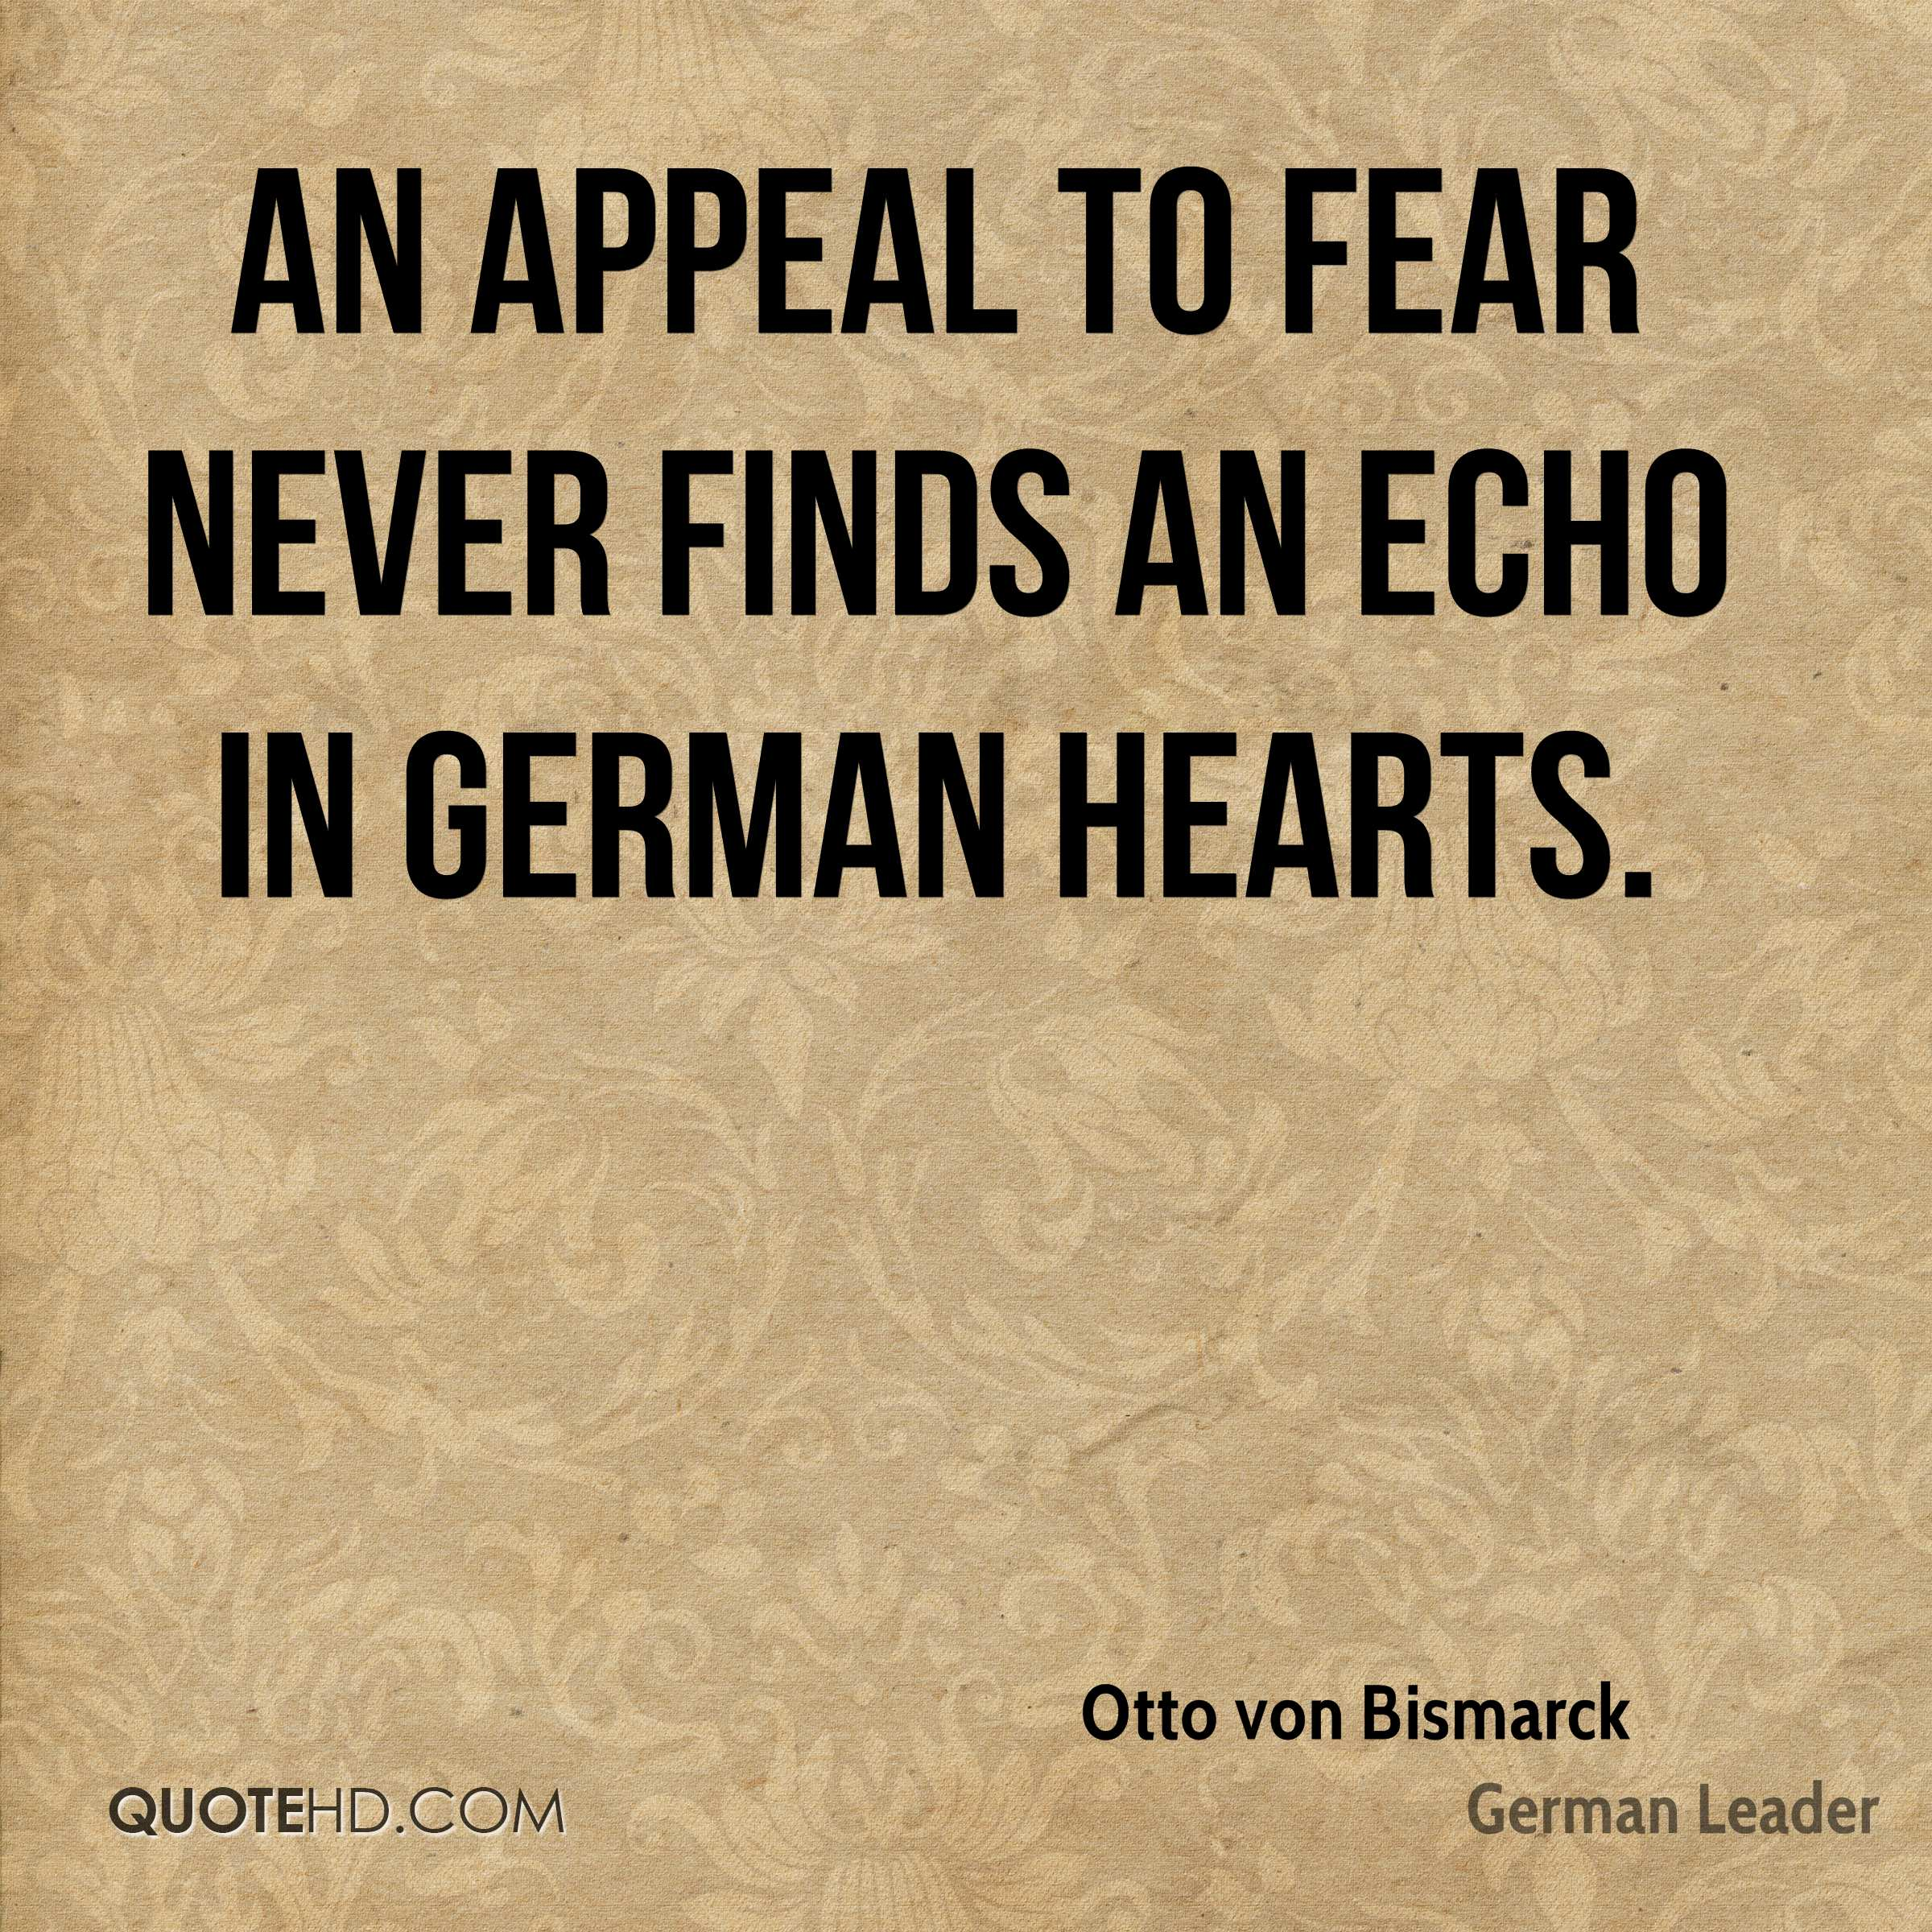 An appeal to fear never finds an echo in German hearts.